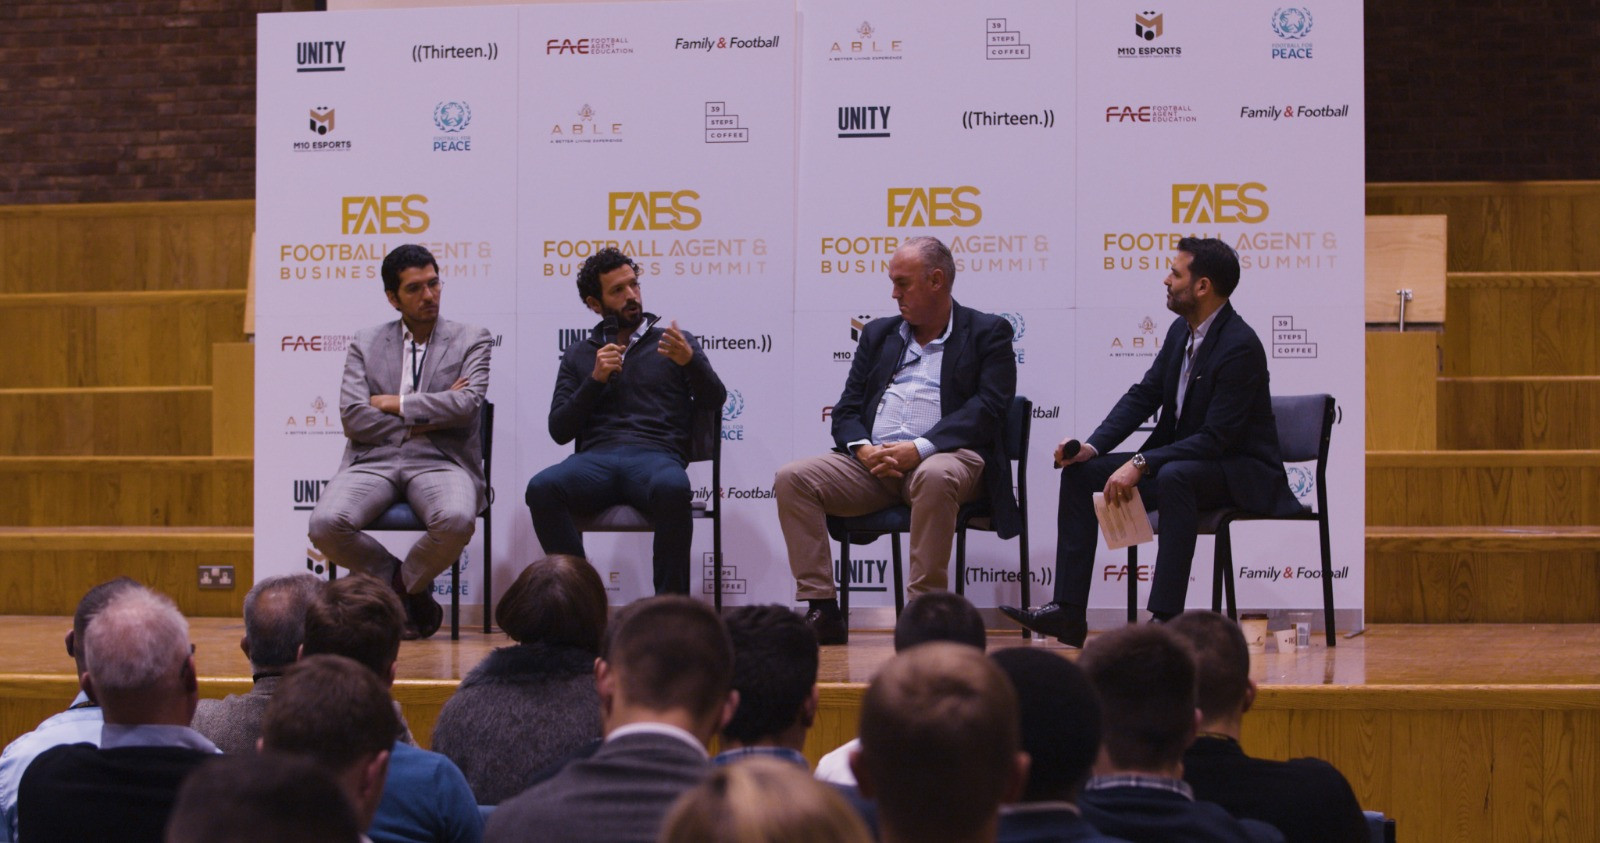 The Fooball Agent & Business Summit 2020